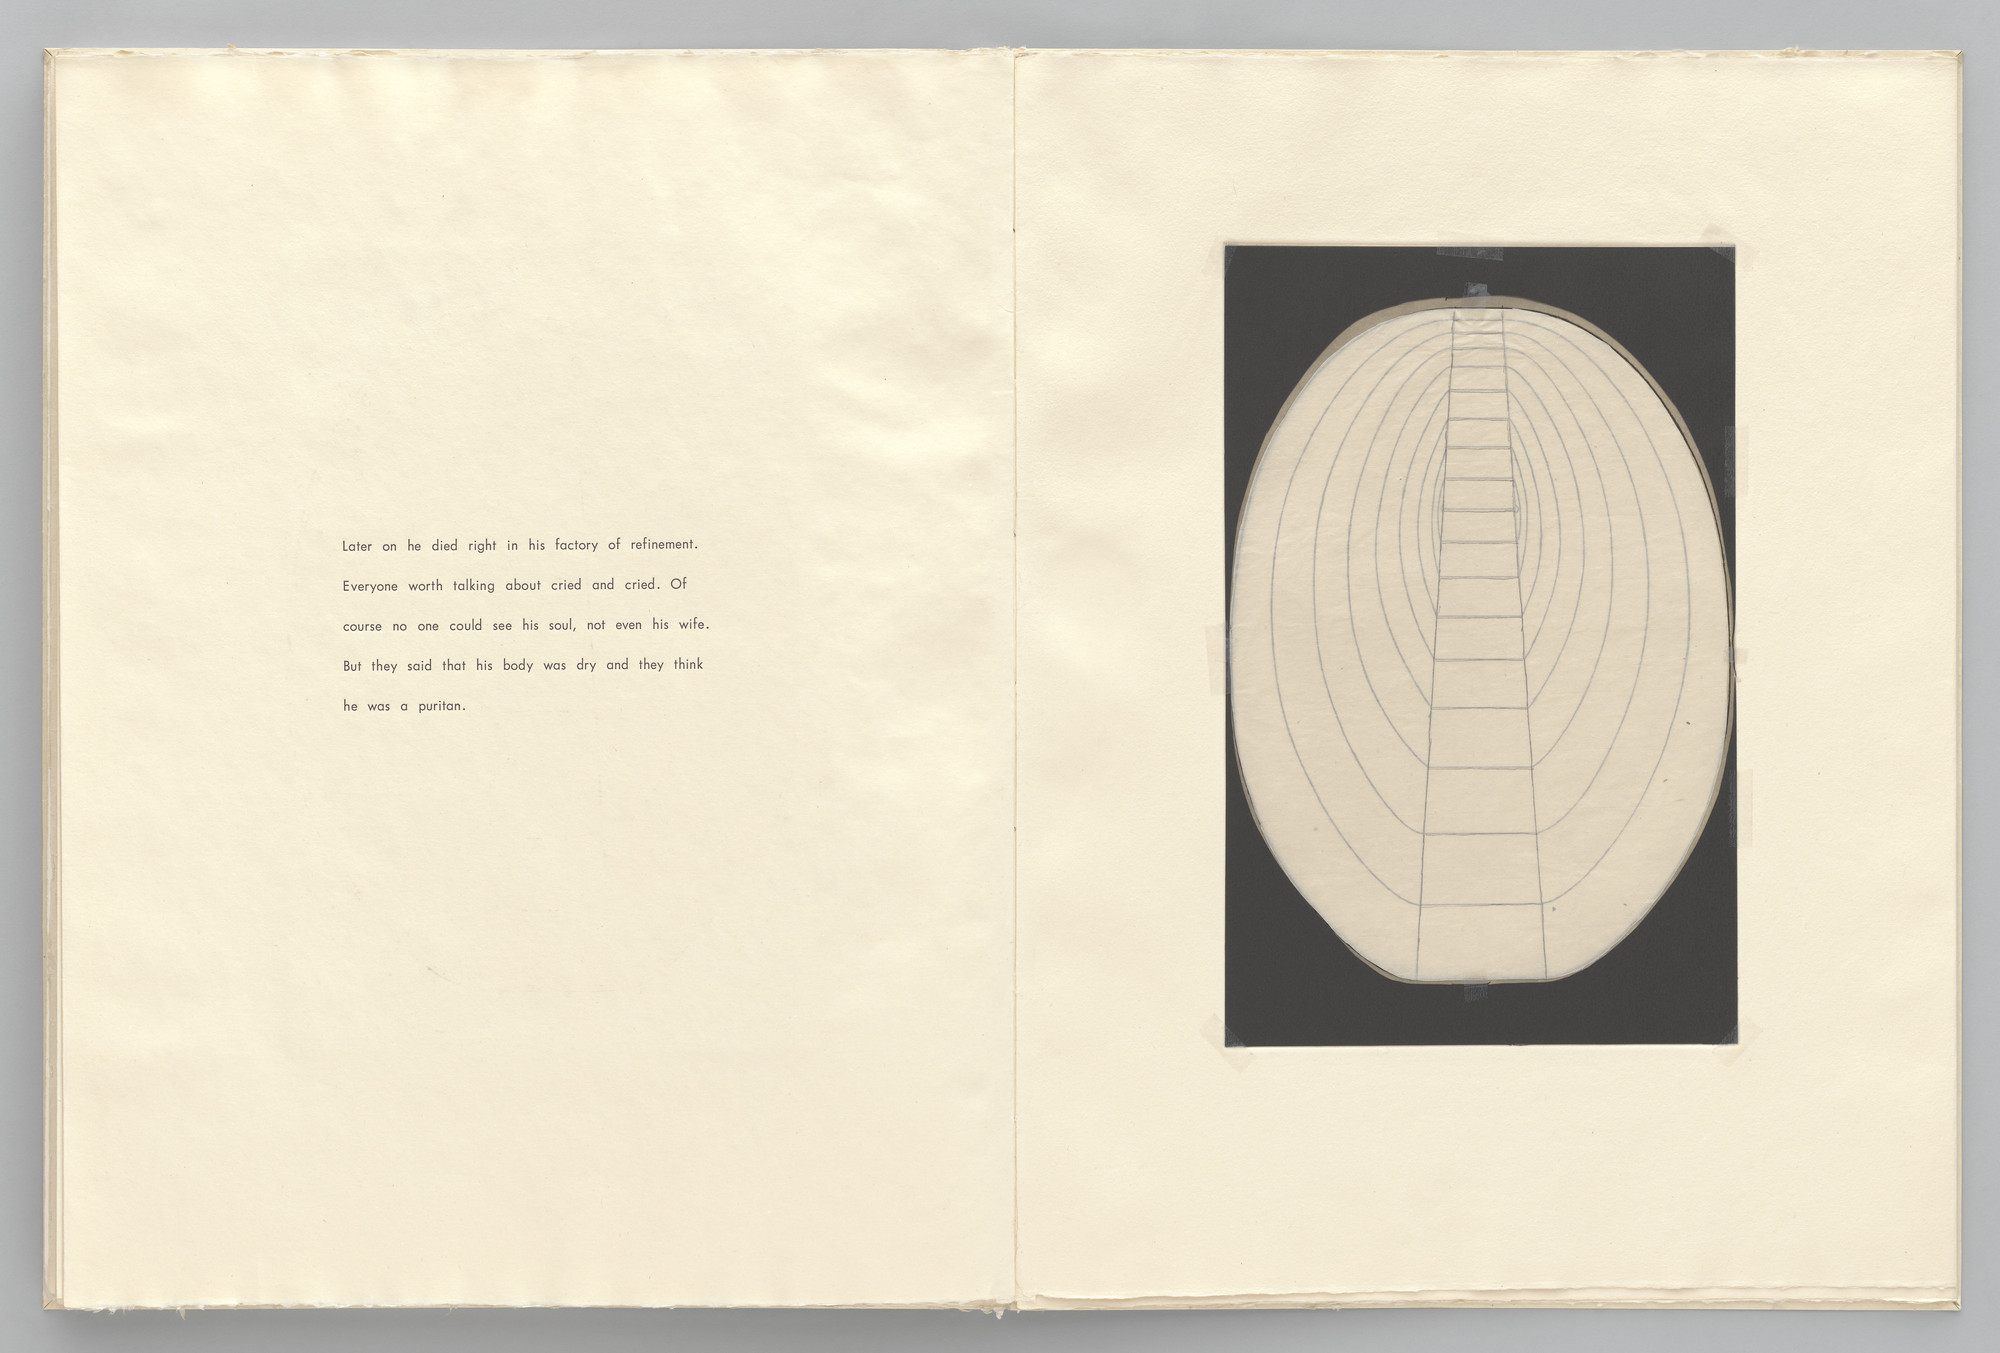 Louise Bourgeois. Untitled, plate 8 of 8, from the maquette of the illustrated book, the puritan. 1990